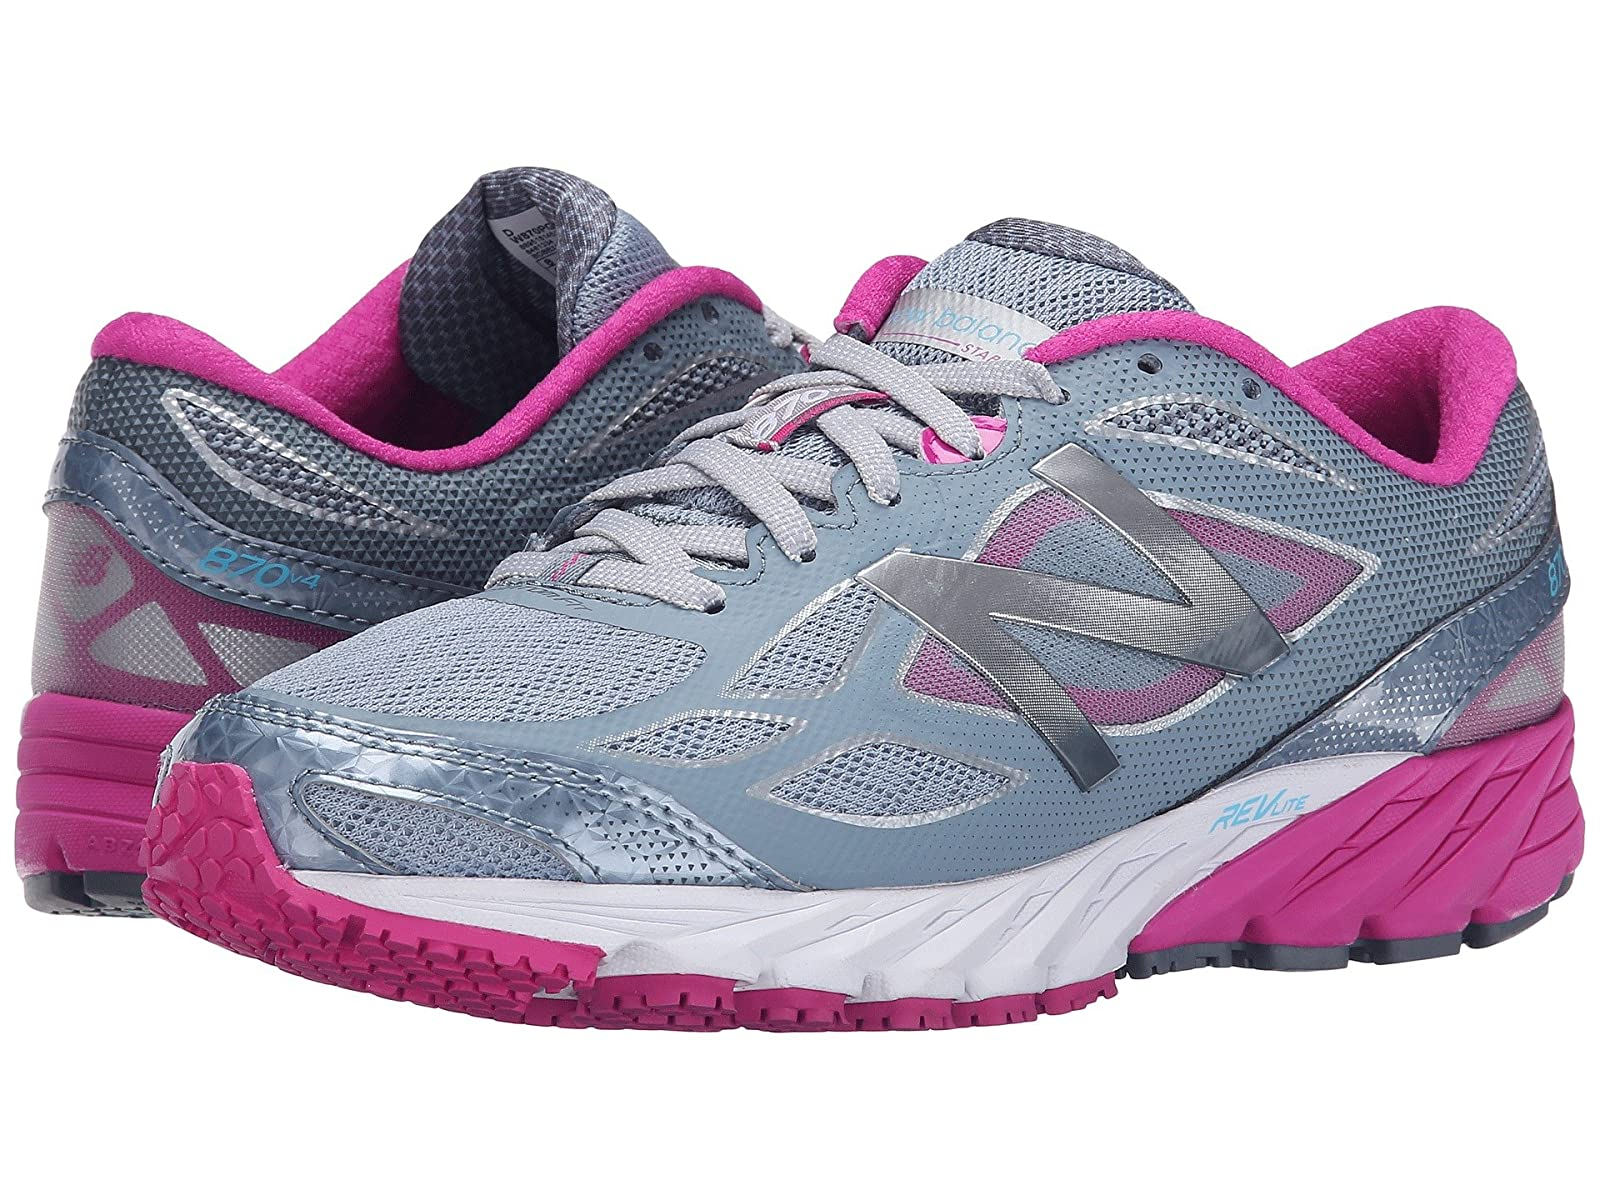 New Balance 870v4Cheap and distinctive eye-catching shoes